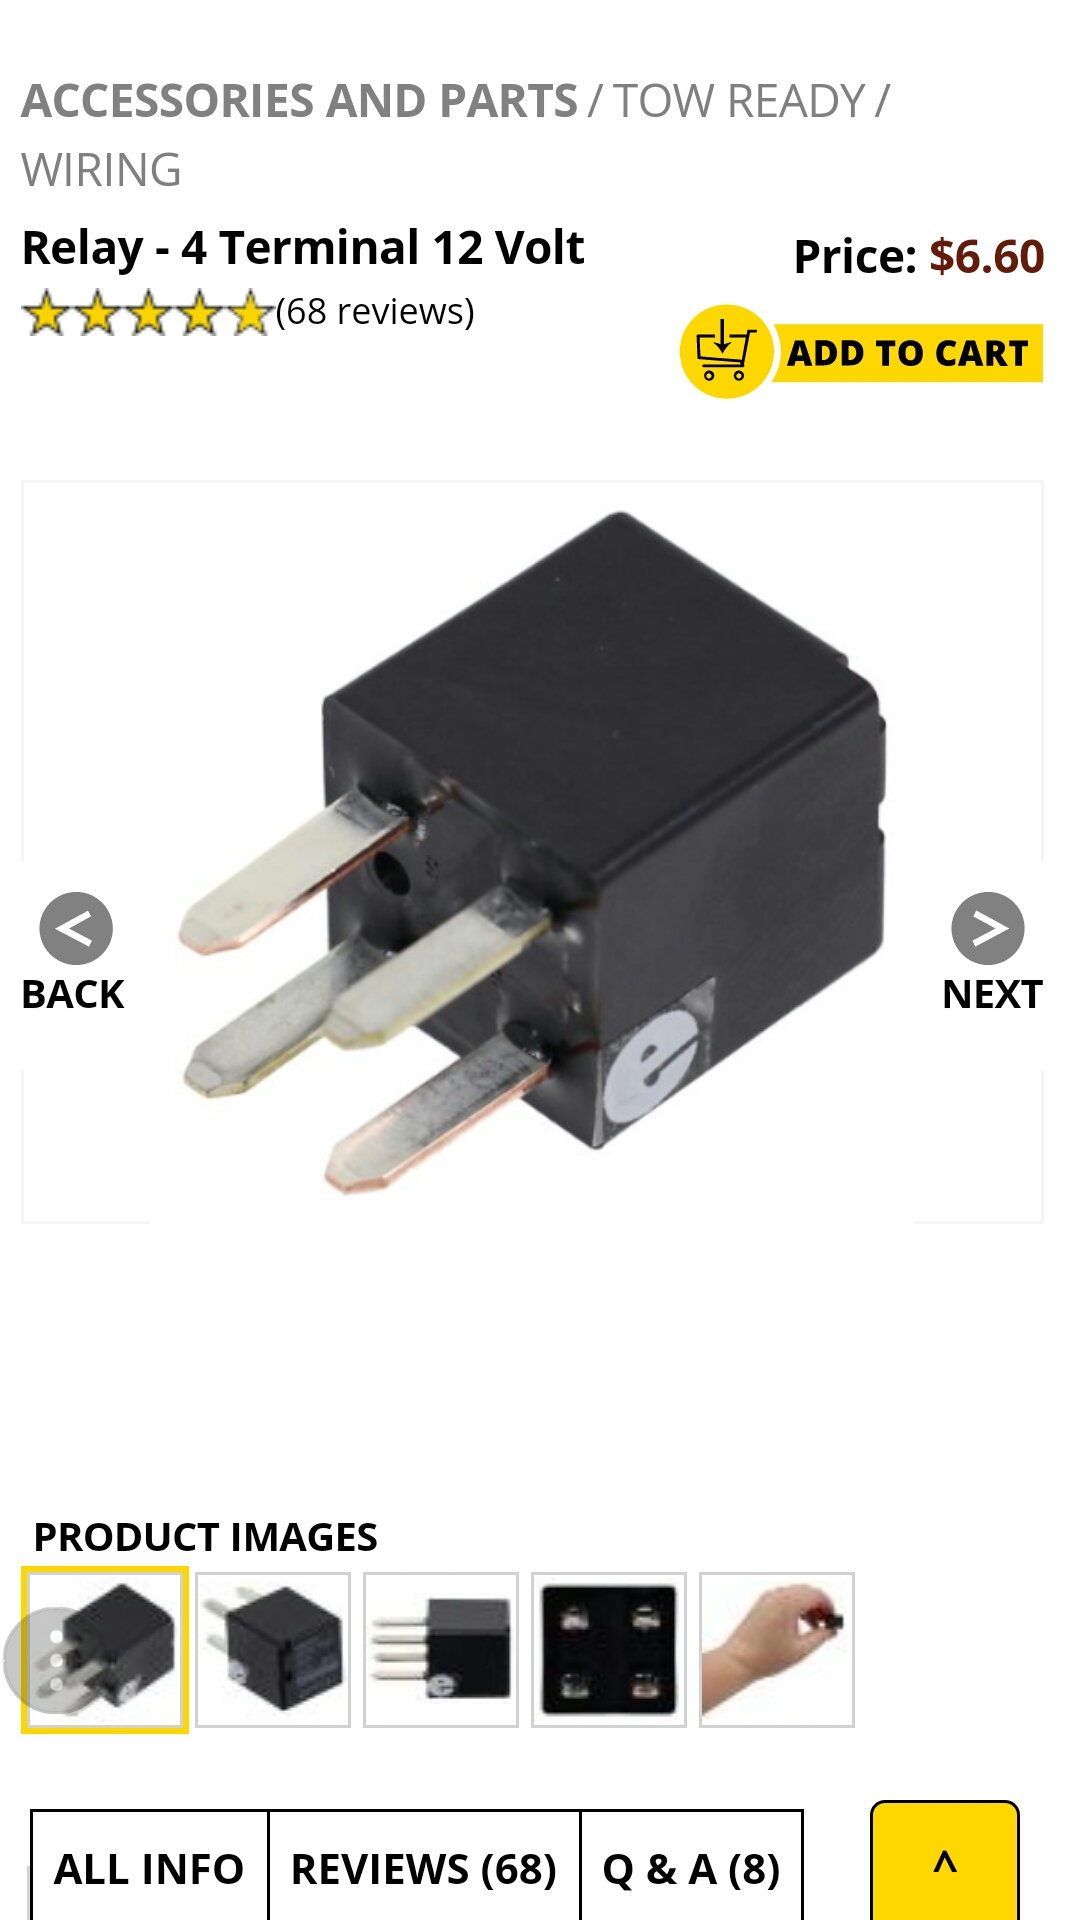 12v accessories wire in the trunk - Jaguar Forums - Jaguar ... on 8 pin relay connections, 8 pin relay plug in, 8 pin cube relay diagram, 8 pin relay circuits, 8 pin time delay relays, 8 pin relay base, 8 pin round base, 8 pin relay socket diagram,